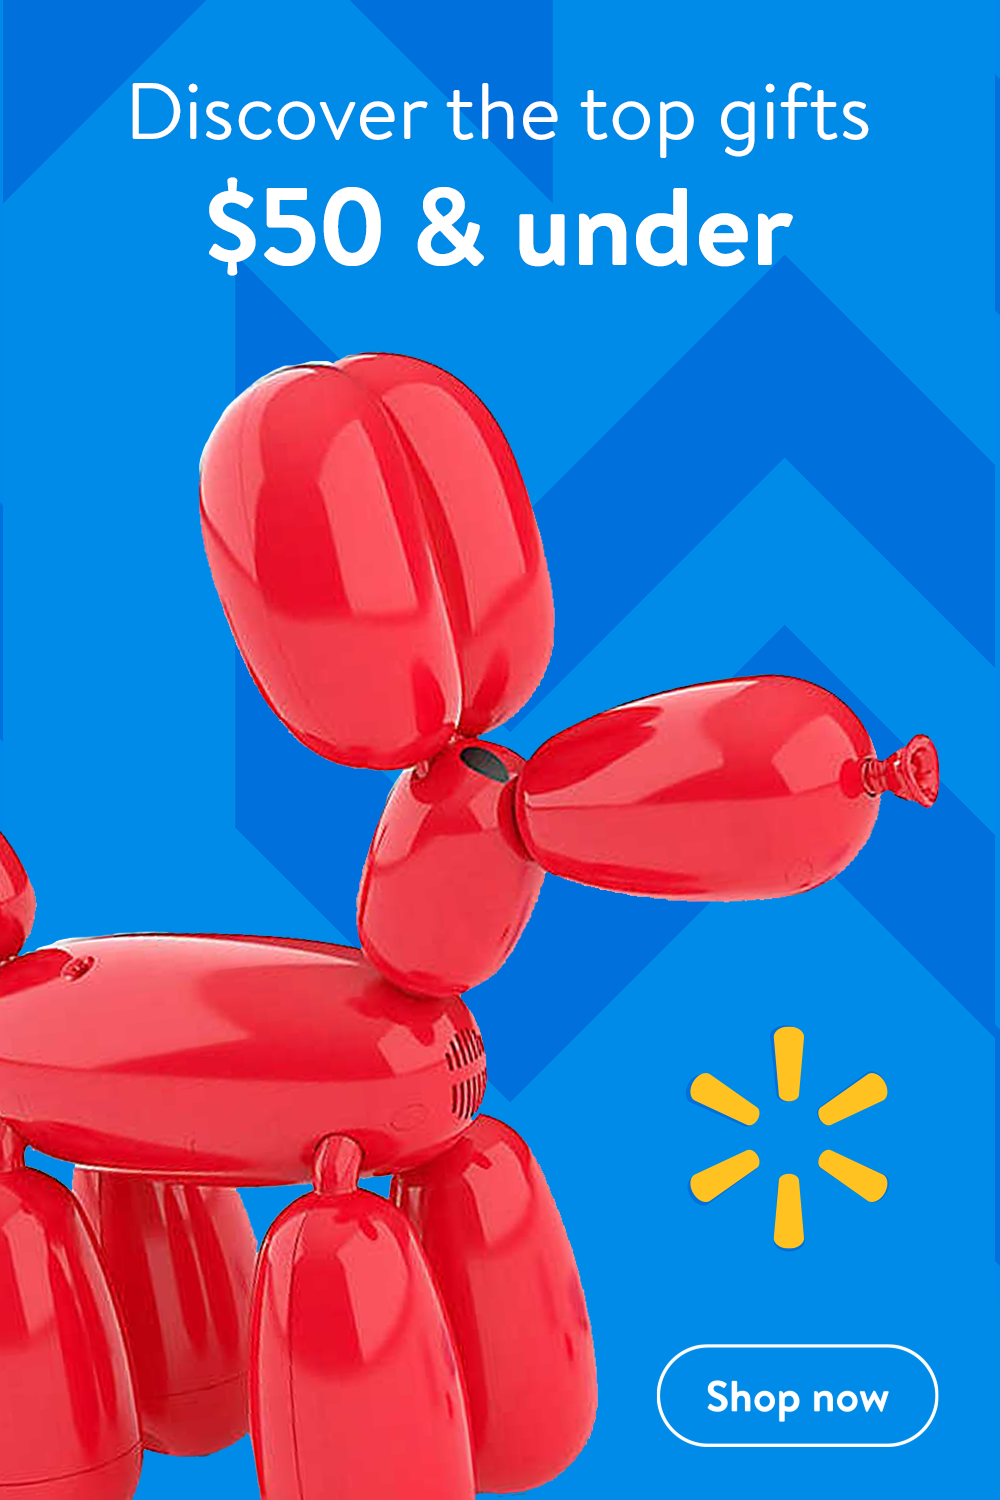 Browse & shop brands at Walmart like Barbie, Wilson & more. Find great gifts at great prices with the help of our Gift Finder. You'll find this year's best gifts, from tech to toys, at low prices.​